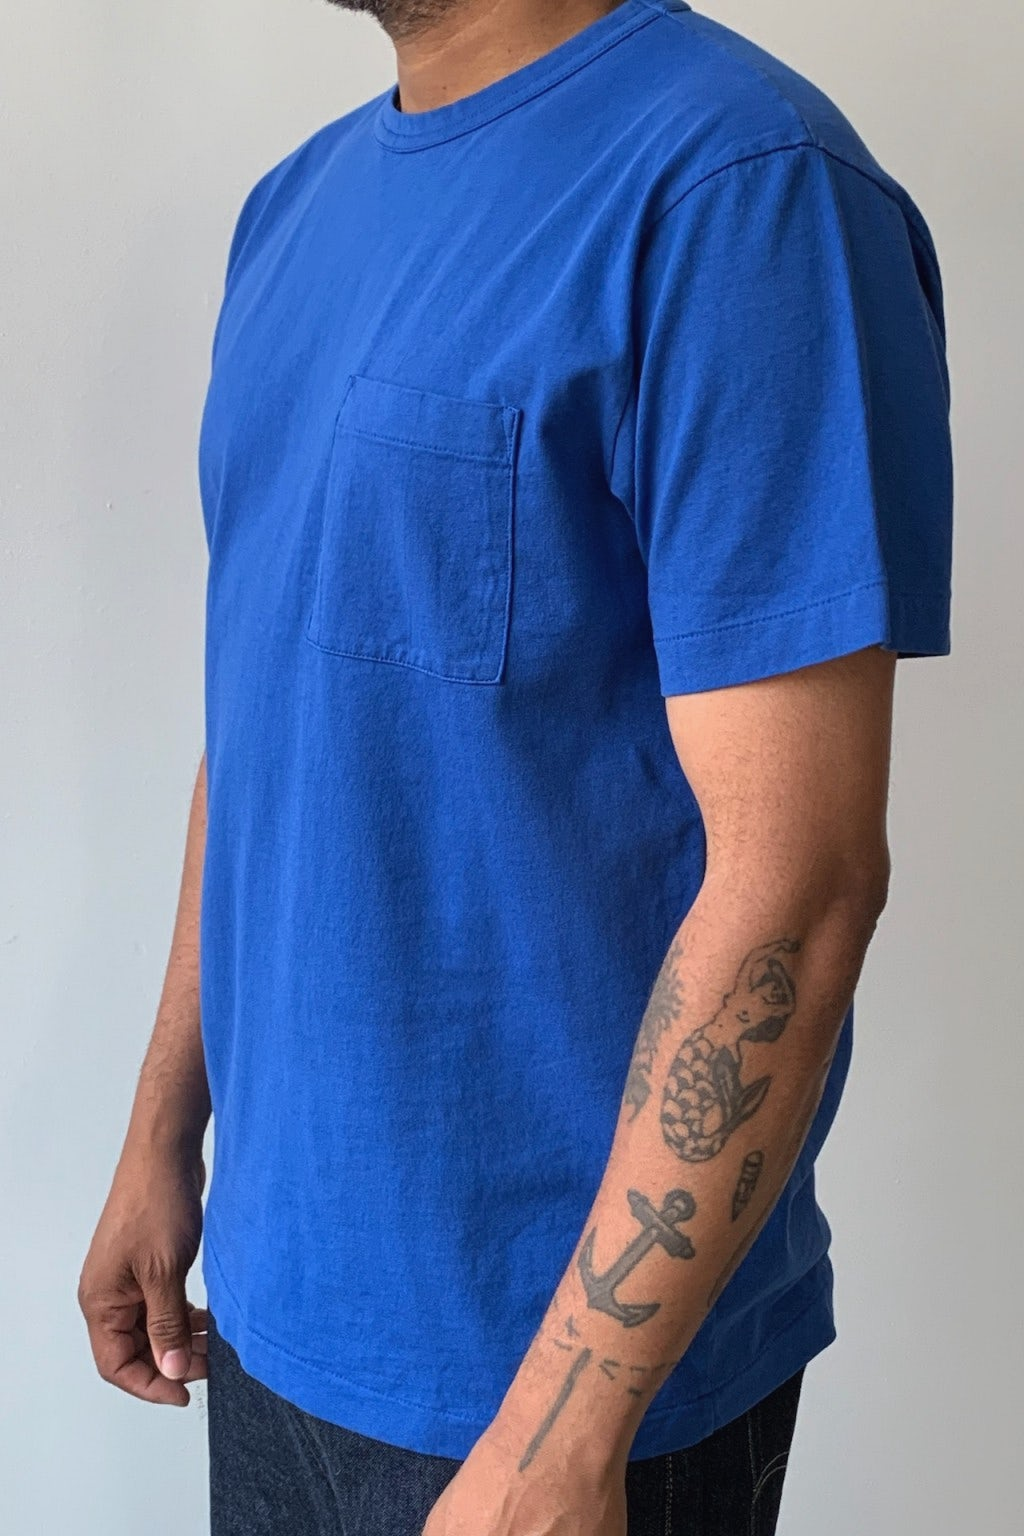 Dehen 1920 Heavy Duty Tee - Single Pocket Royal